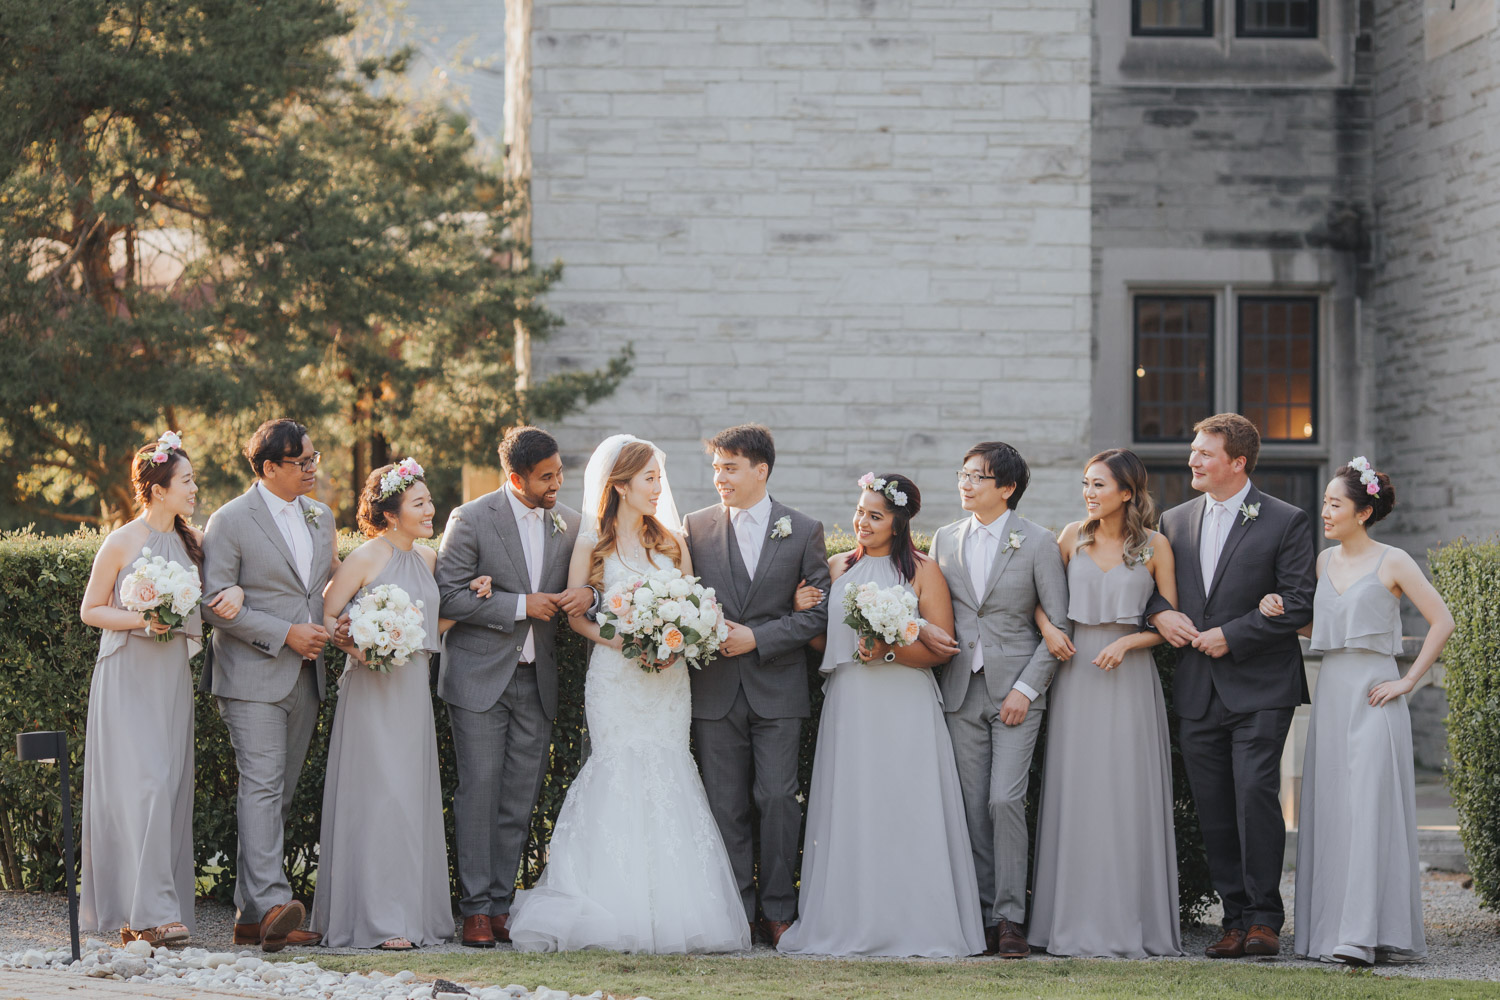 The entire wedding party at the Sunnybrook Vaughan Estate Wedding